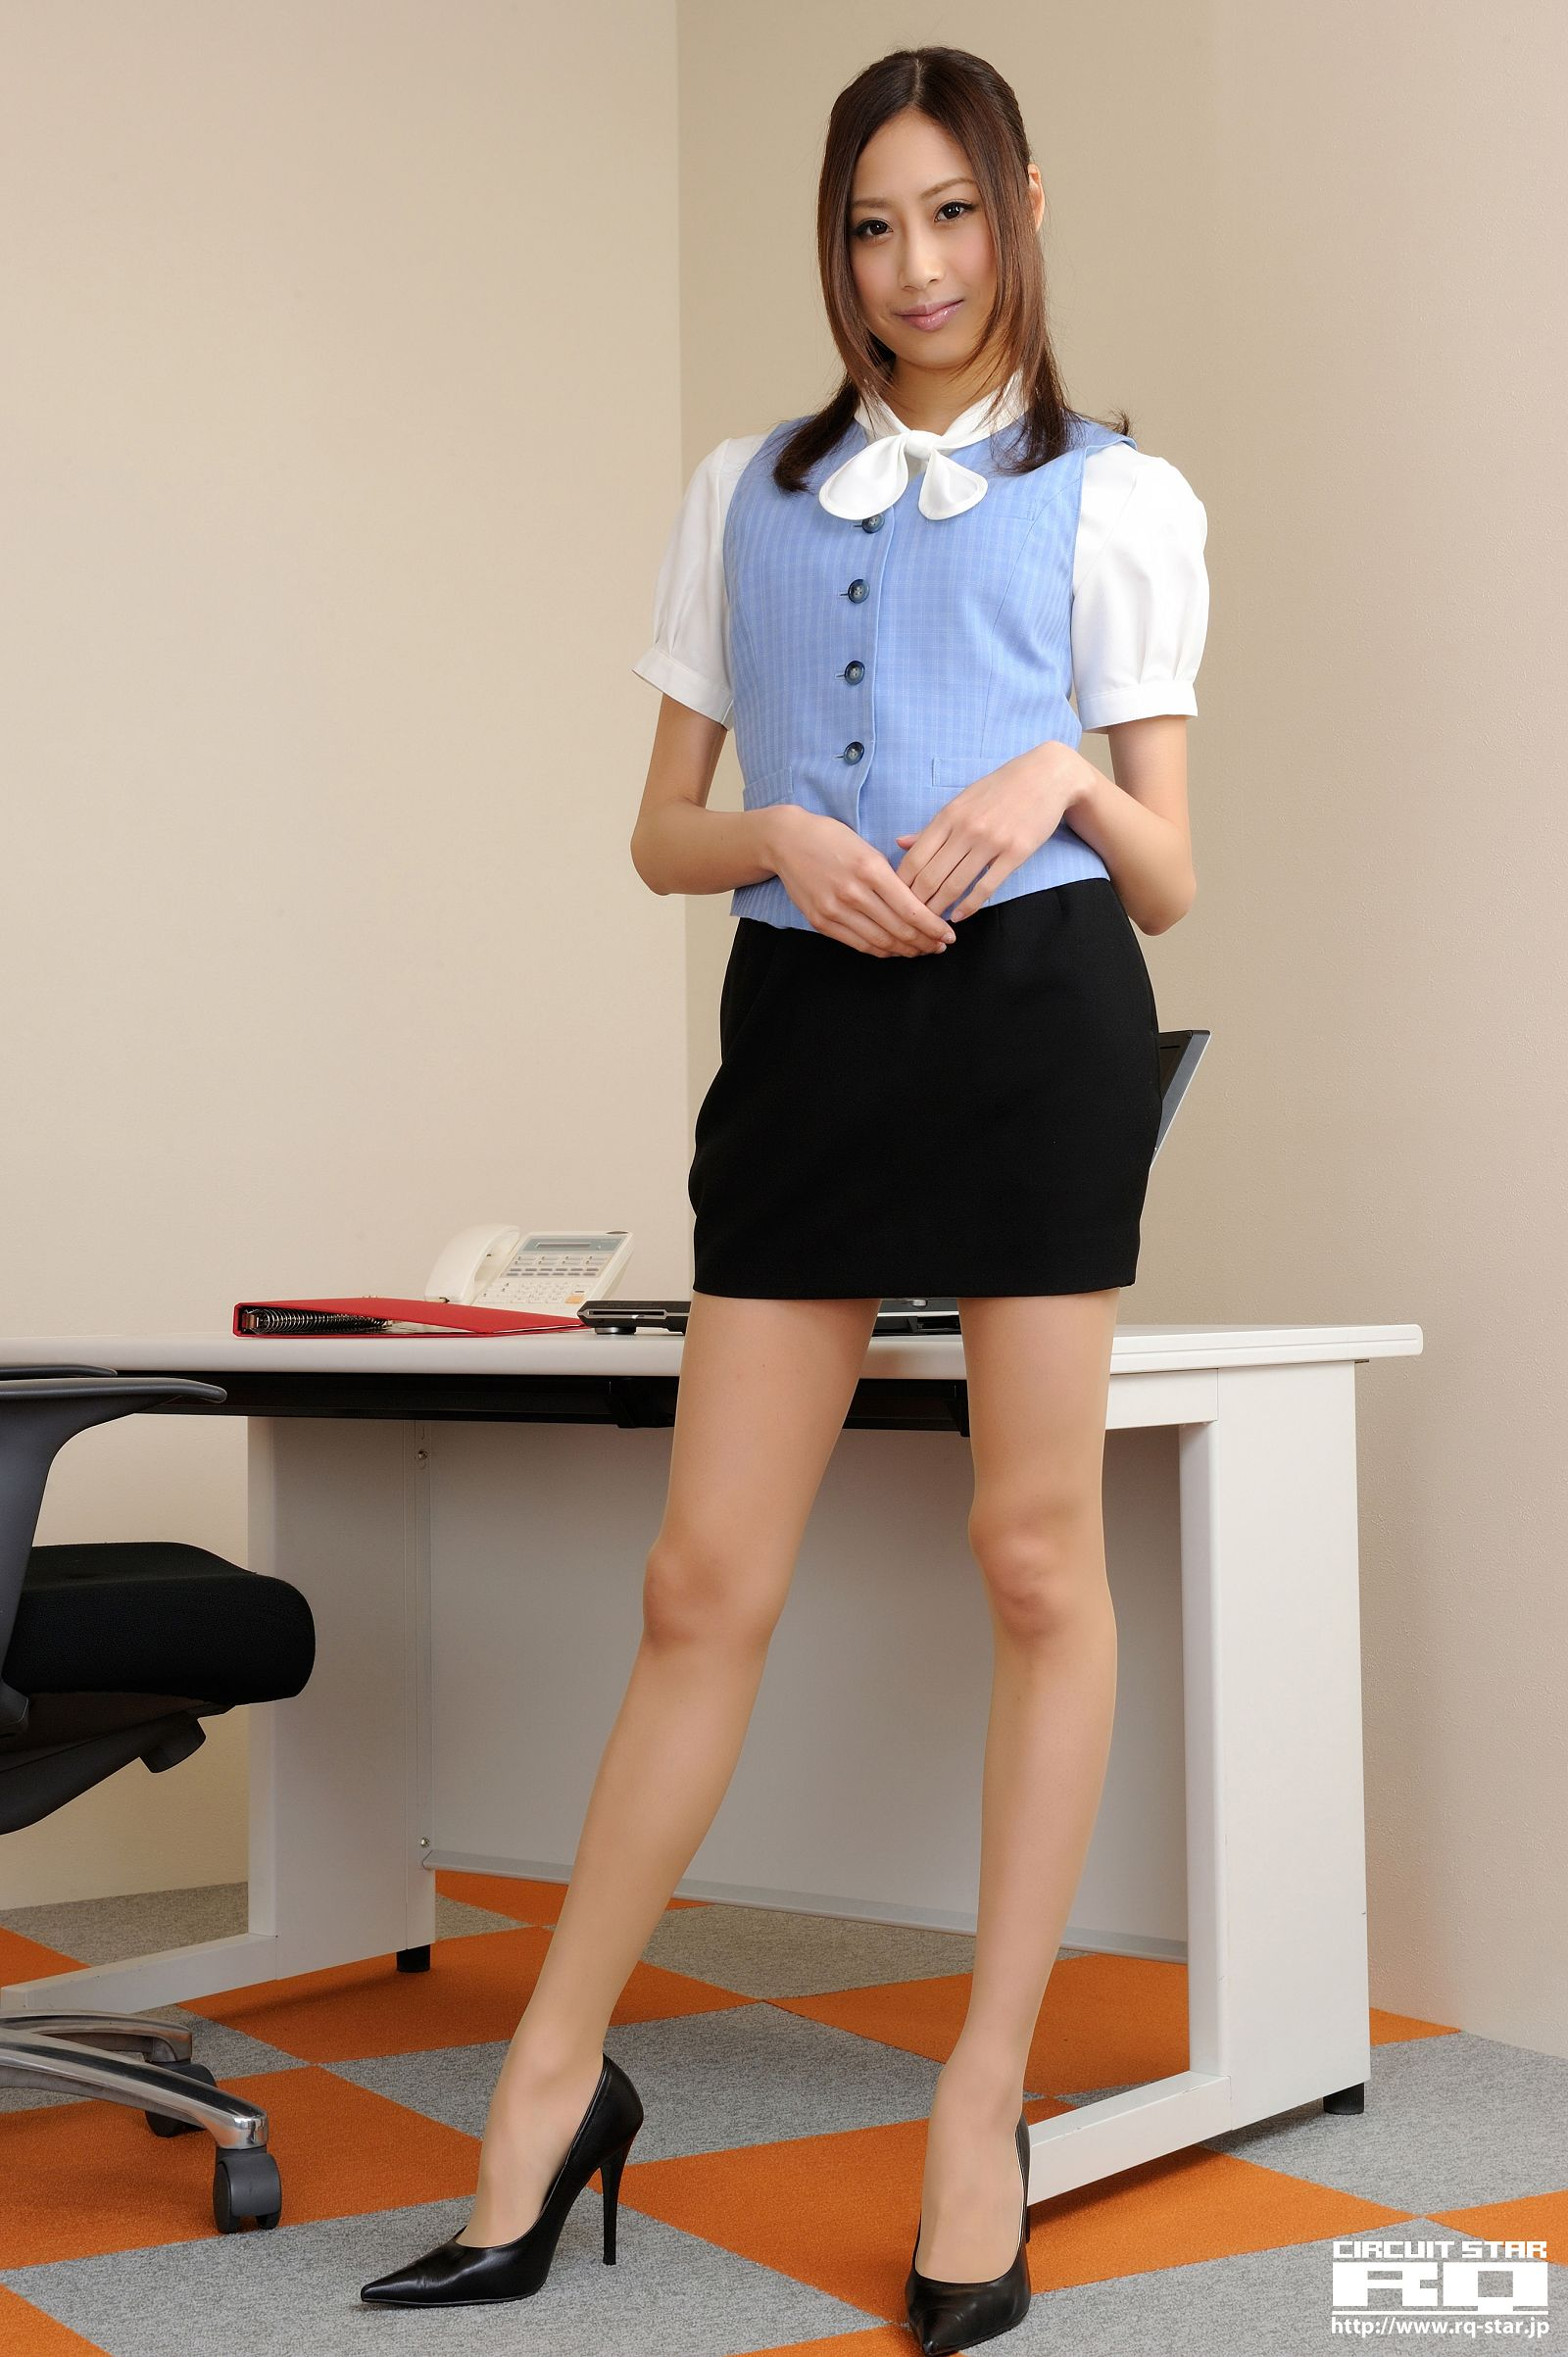 [RQ STAR美女] NO.00652 Miki Sakurai 桜井未來 Office Lady[120P] RQ STAR 第1张